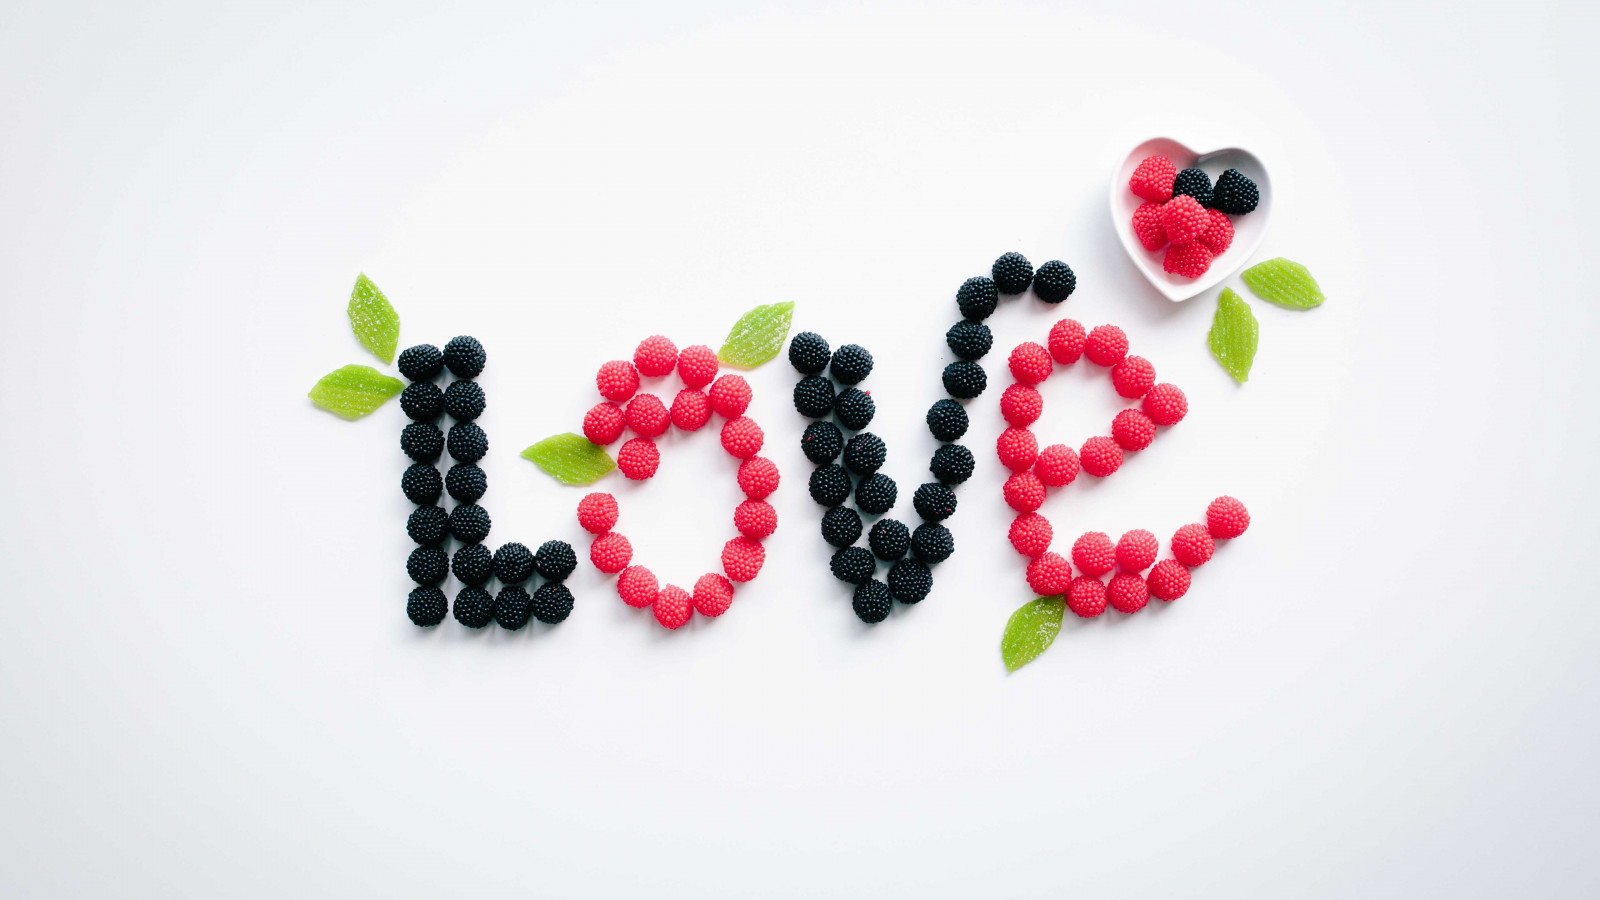 Love message with fruits | 1600x900 wallpaper